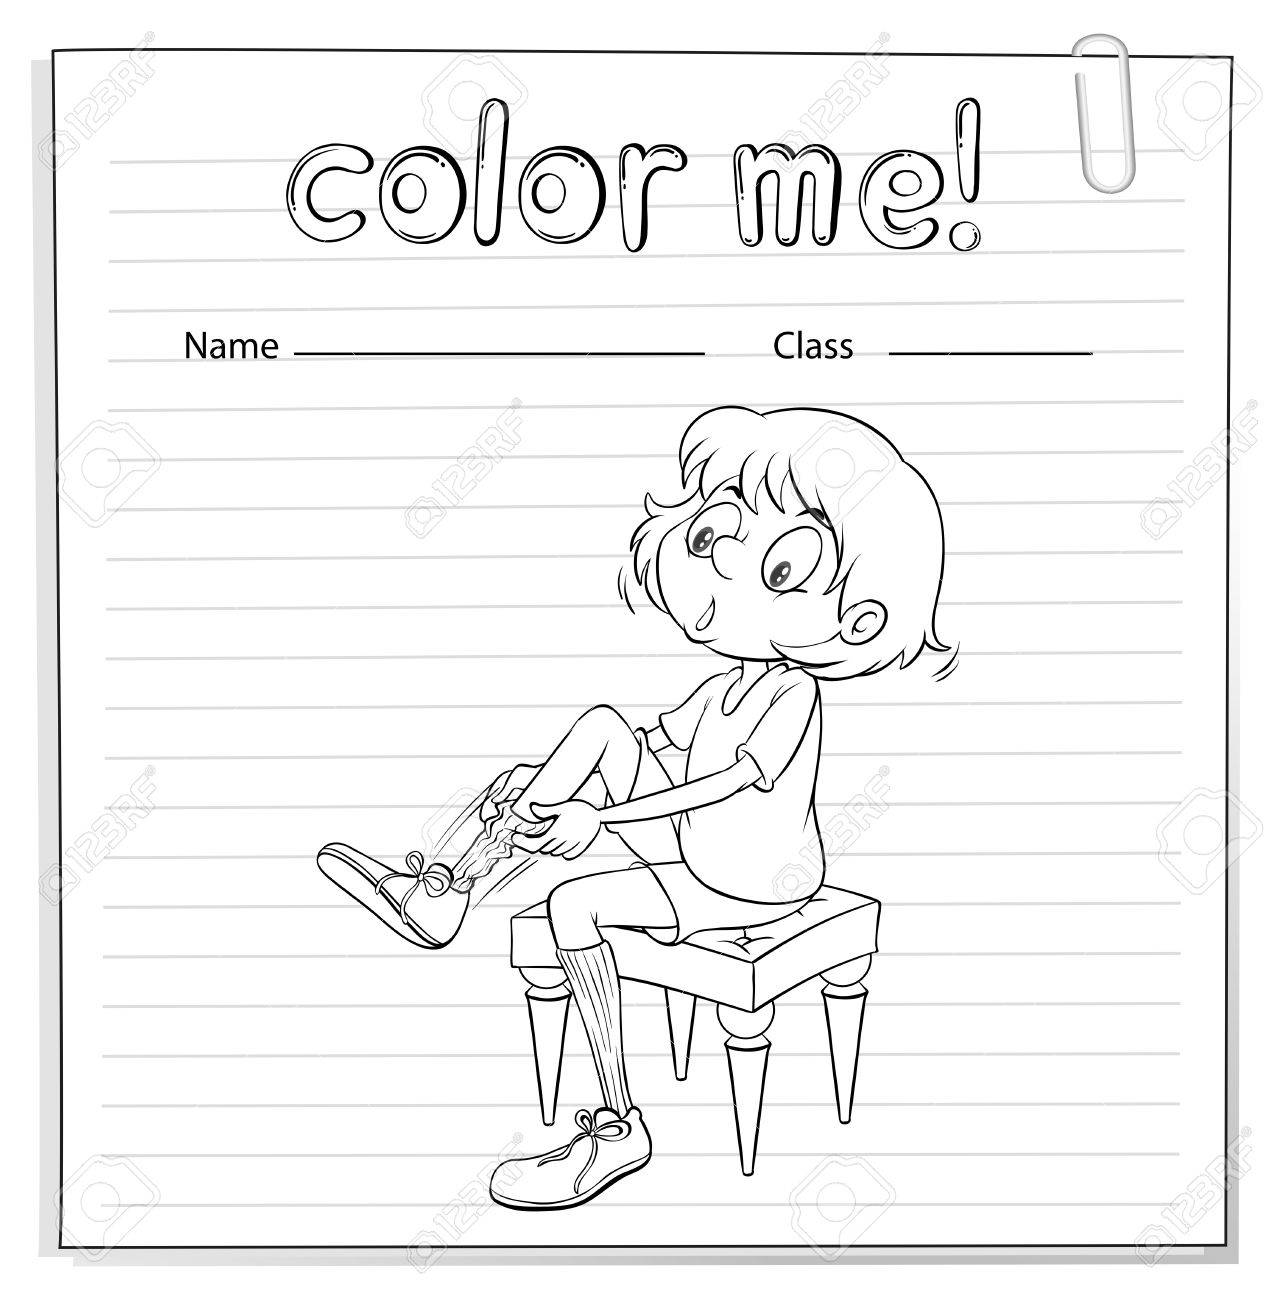 worksheet Vector Worksheet coloring worksheet with a girl pulling her sock on white background stock vector 37450589